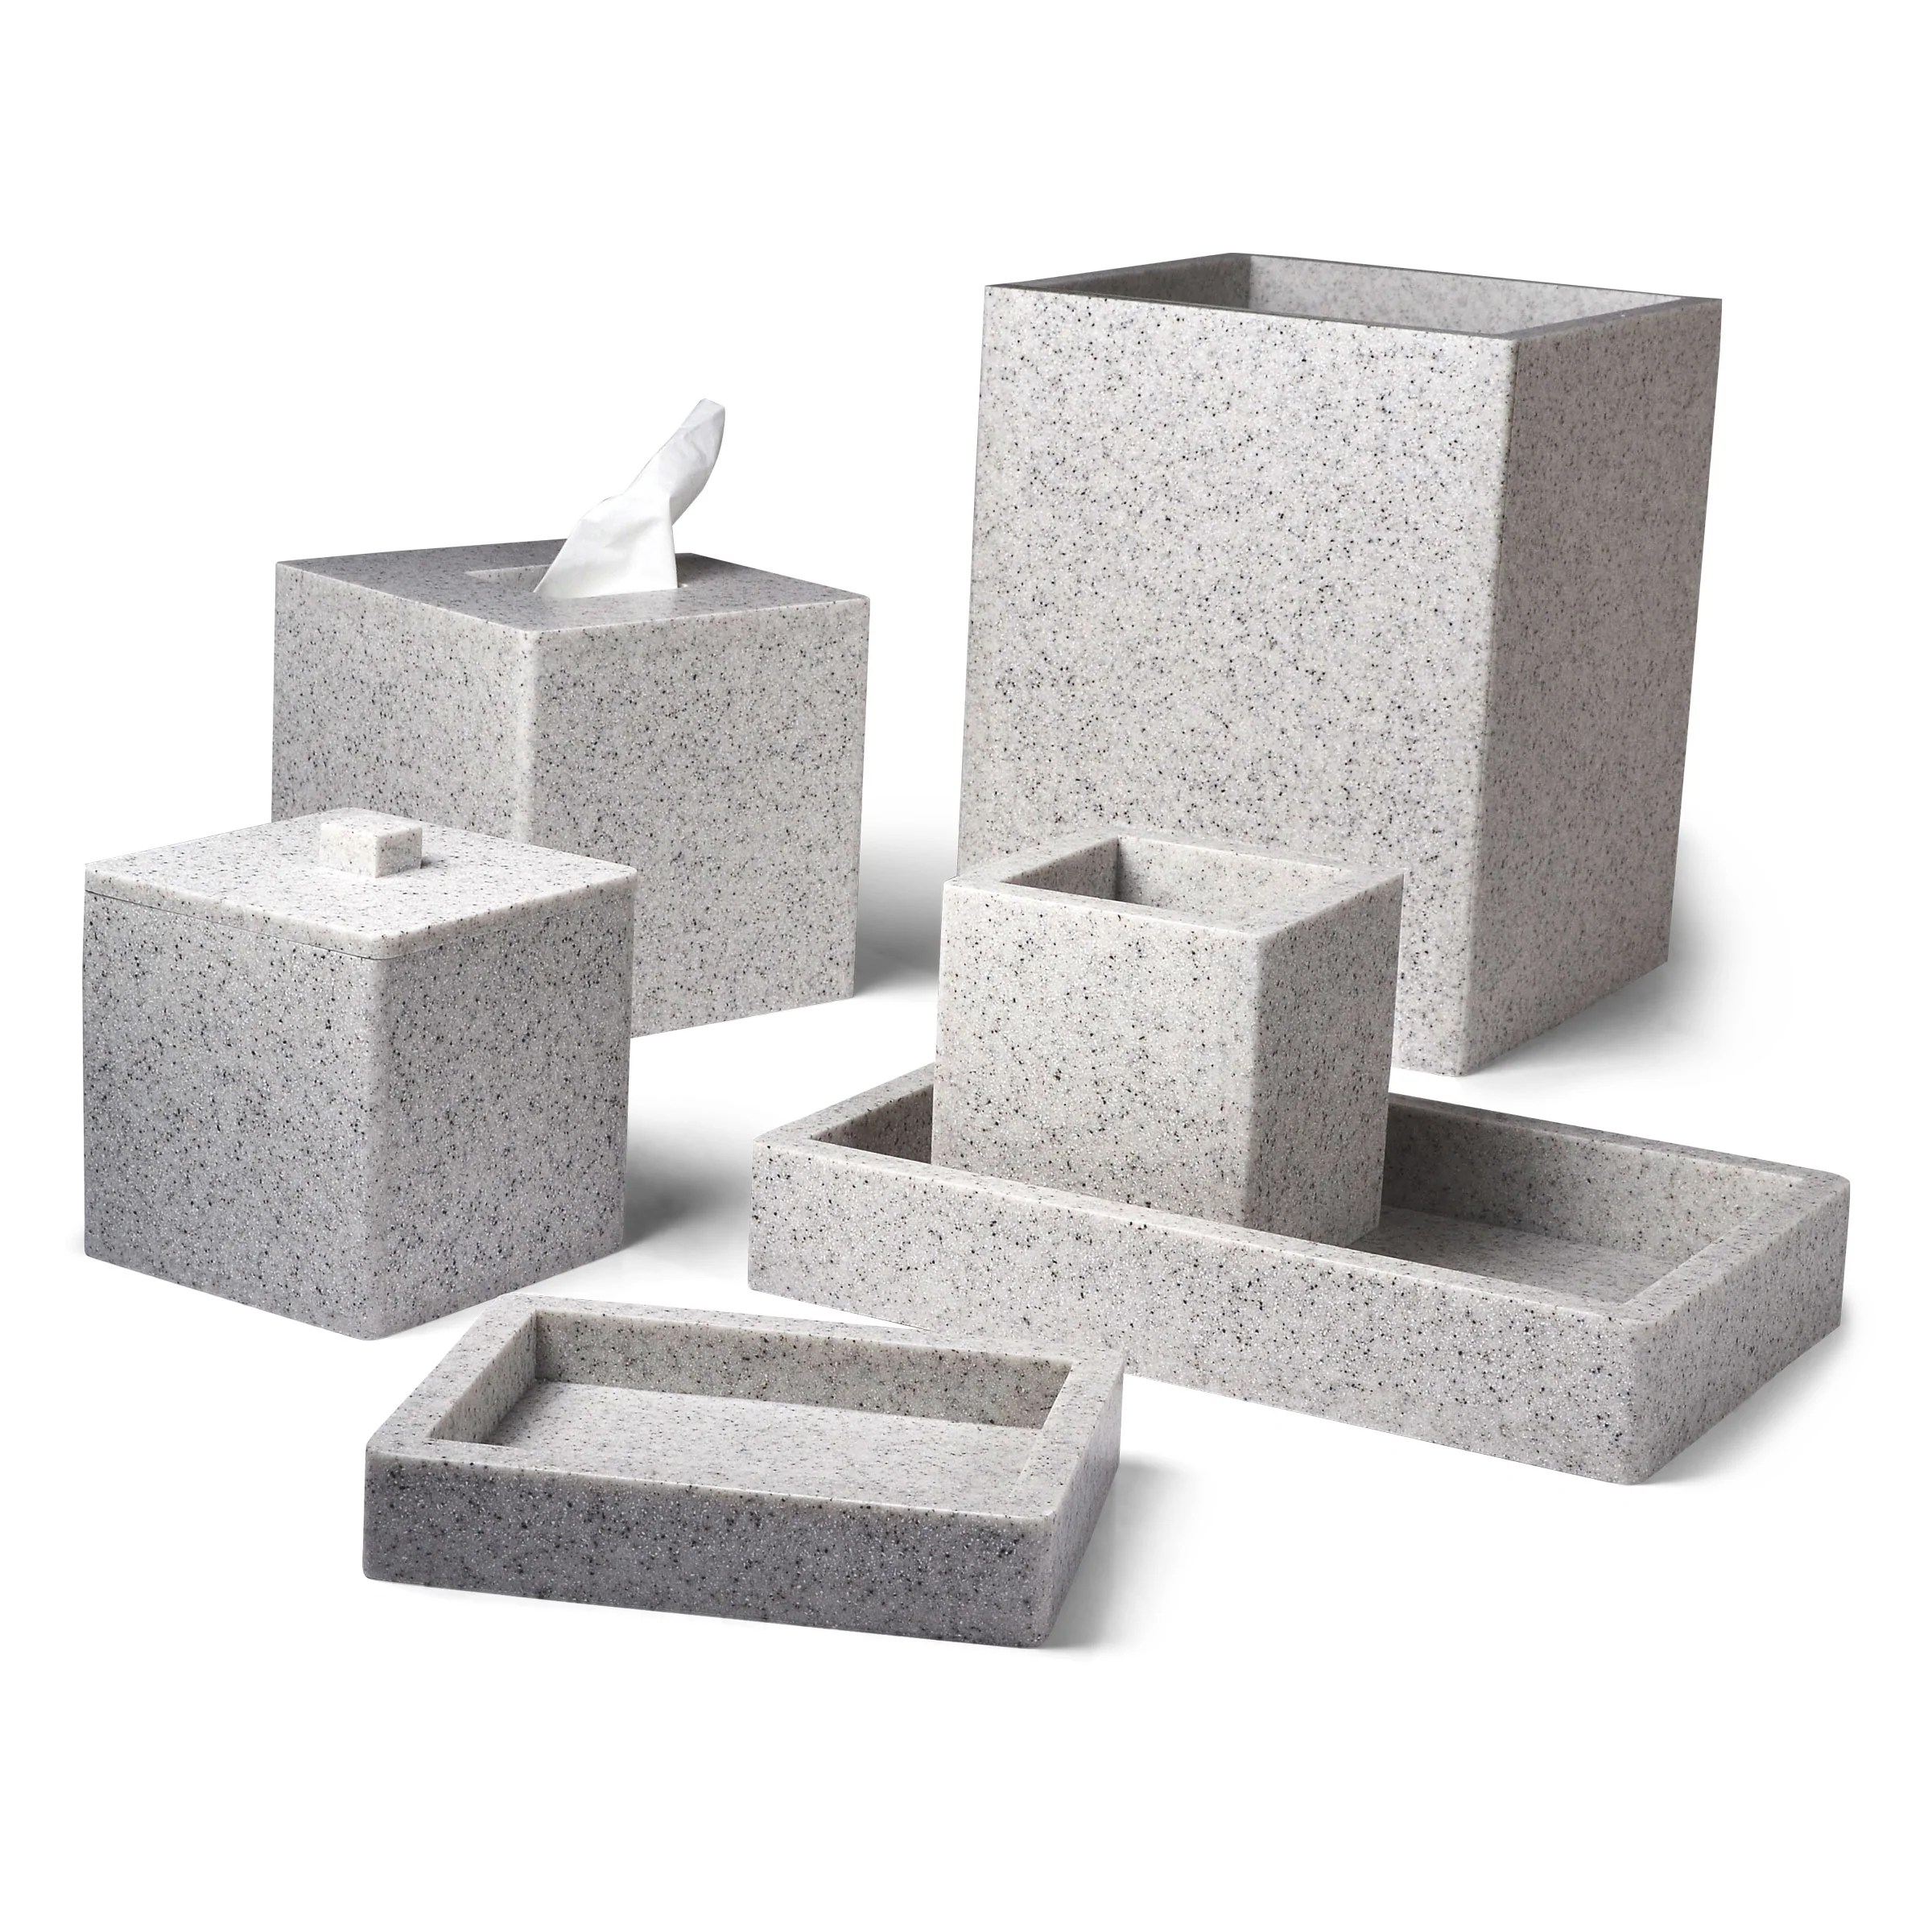 Bath Accessories Mike And Ally Contours Corian Bath Accessories Stone